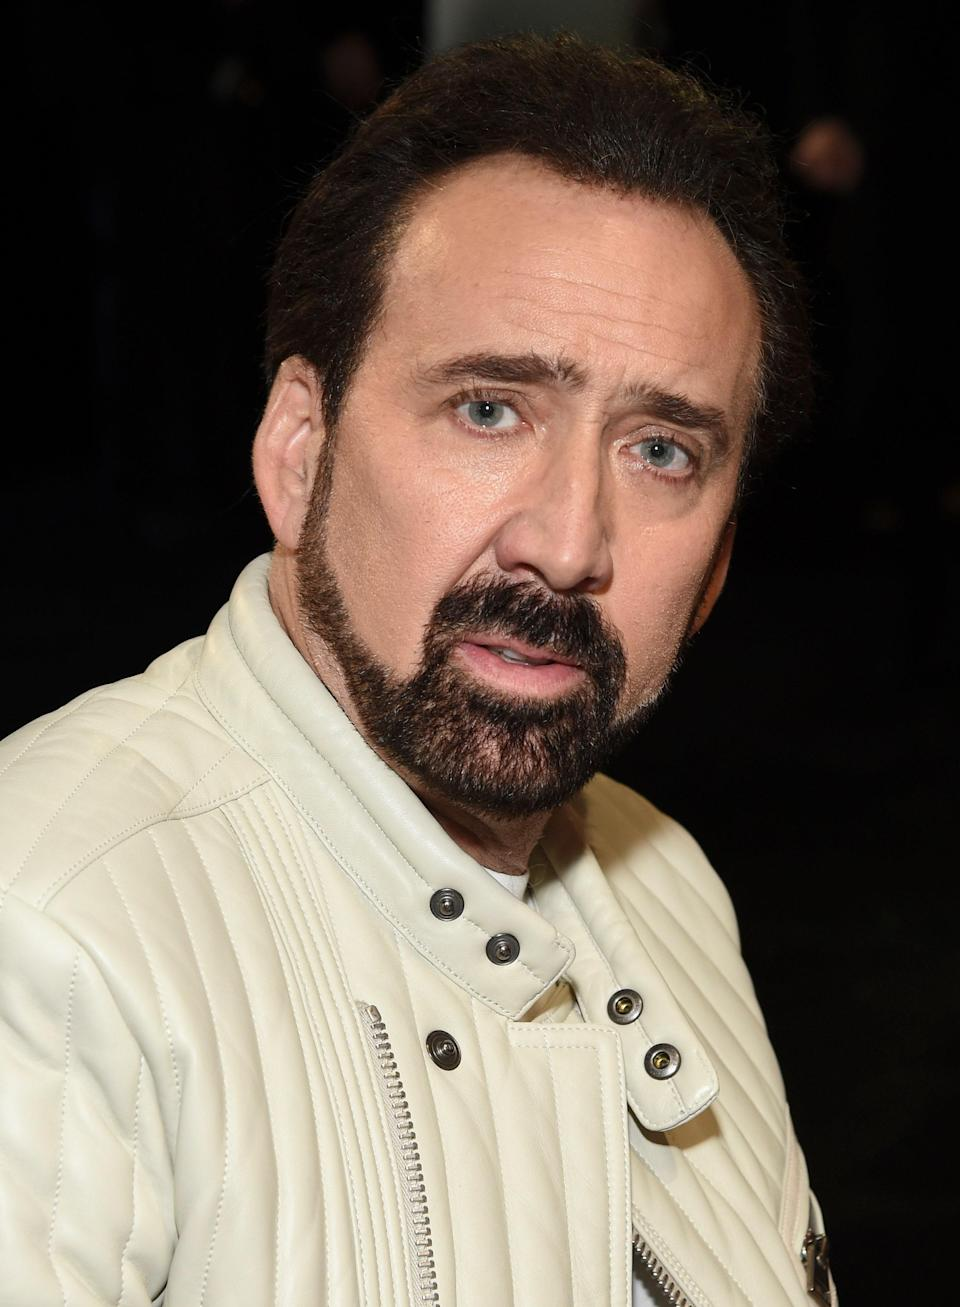 Nicolas Cage was born into a Hollywood-famous family, but you wouldn't know it by his last name. That's intentional: The actor, born Nicolas Coppola, dropped his last name in an effort to separate himself from any accusations of nepotism. (His uncle, Francis Ford Coppola, directed all three <em>Godfather</em> movies.) His stage name was inspired by the superhero Luke Cage.